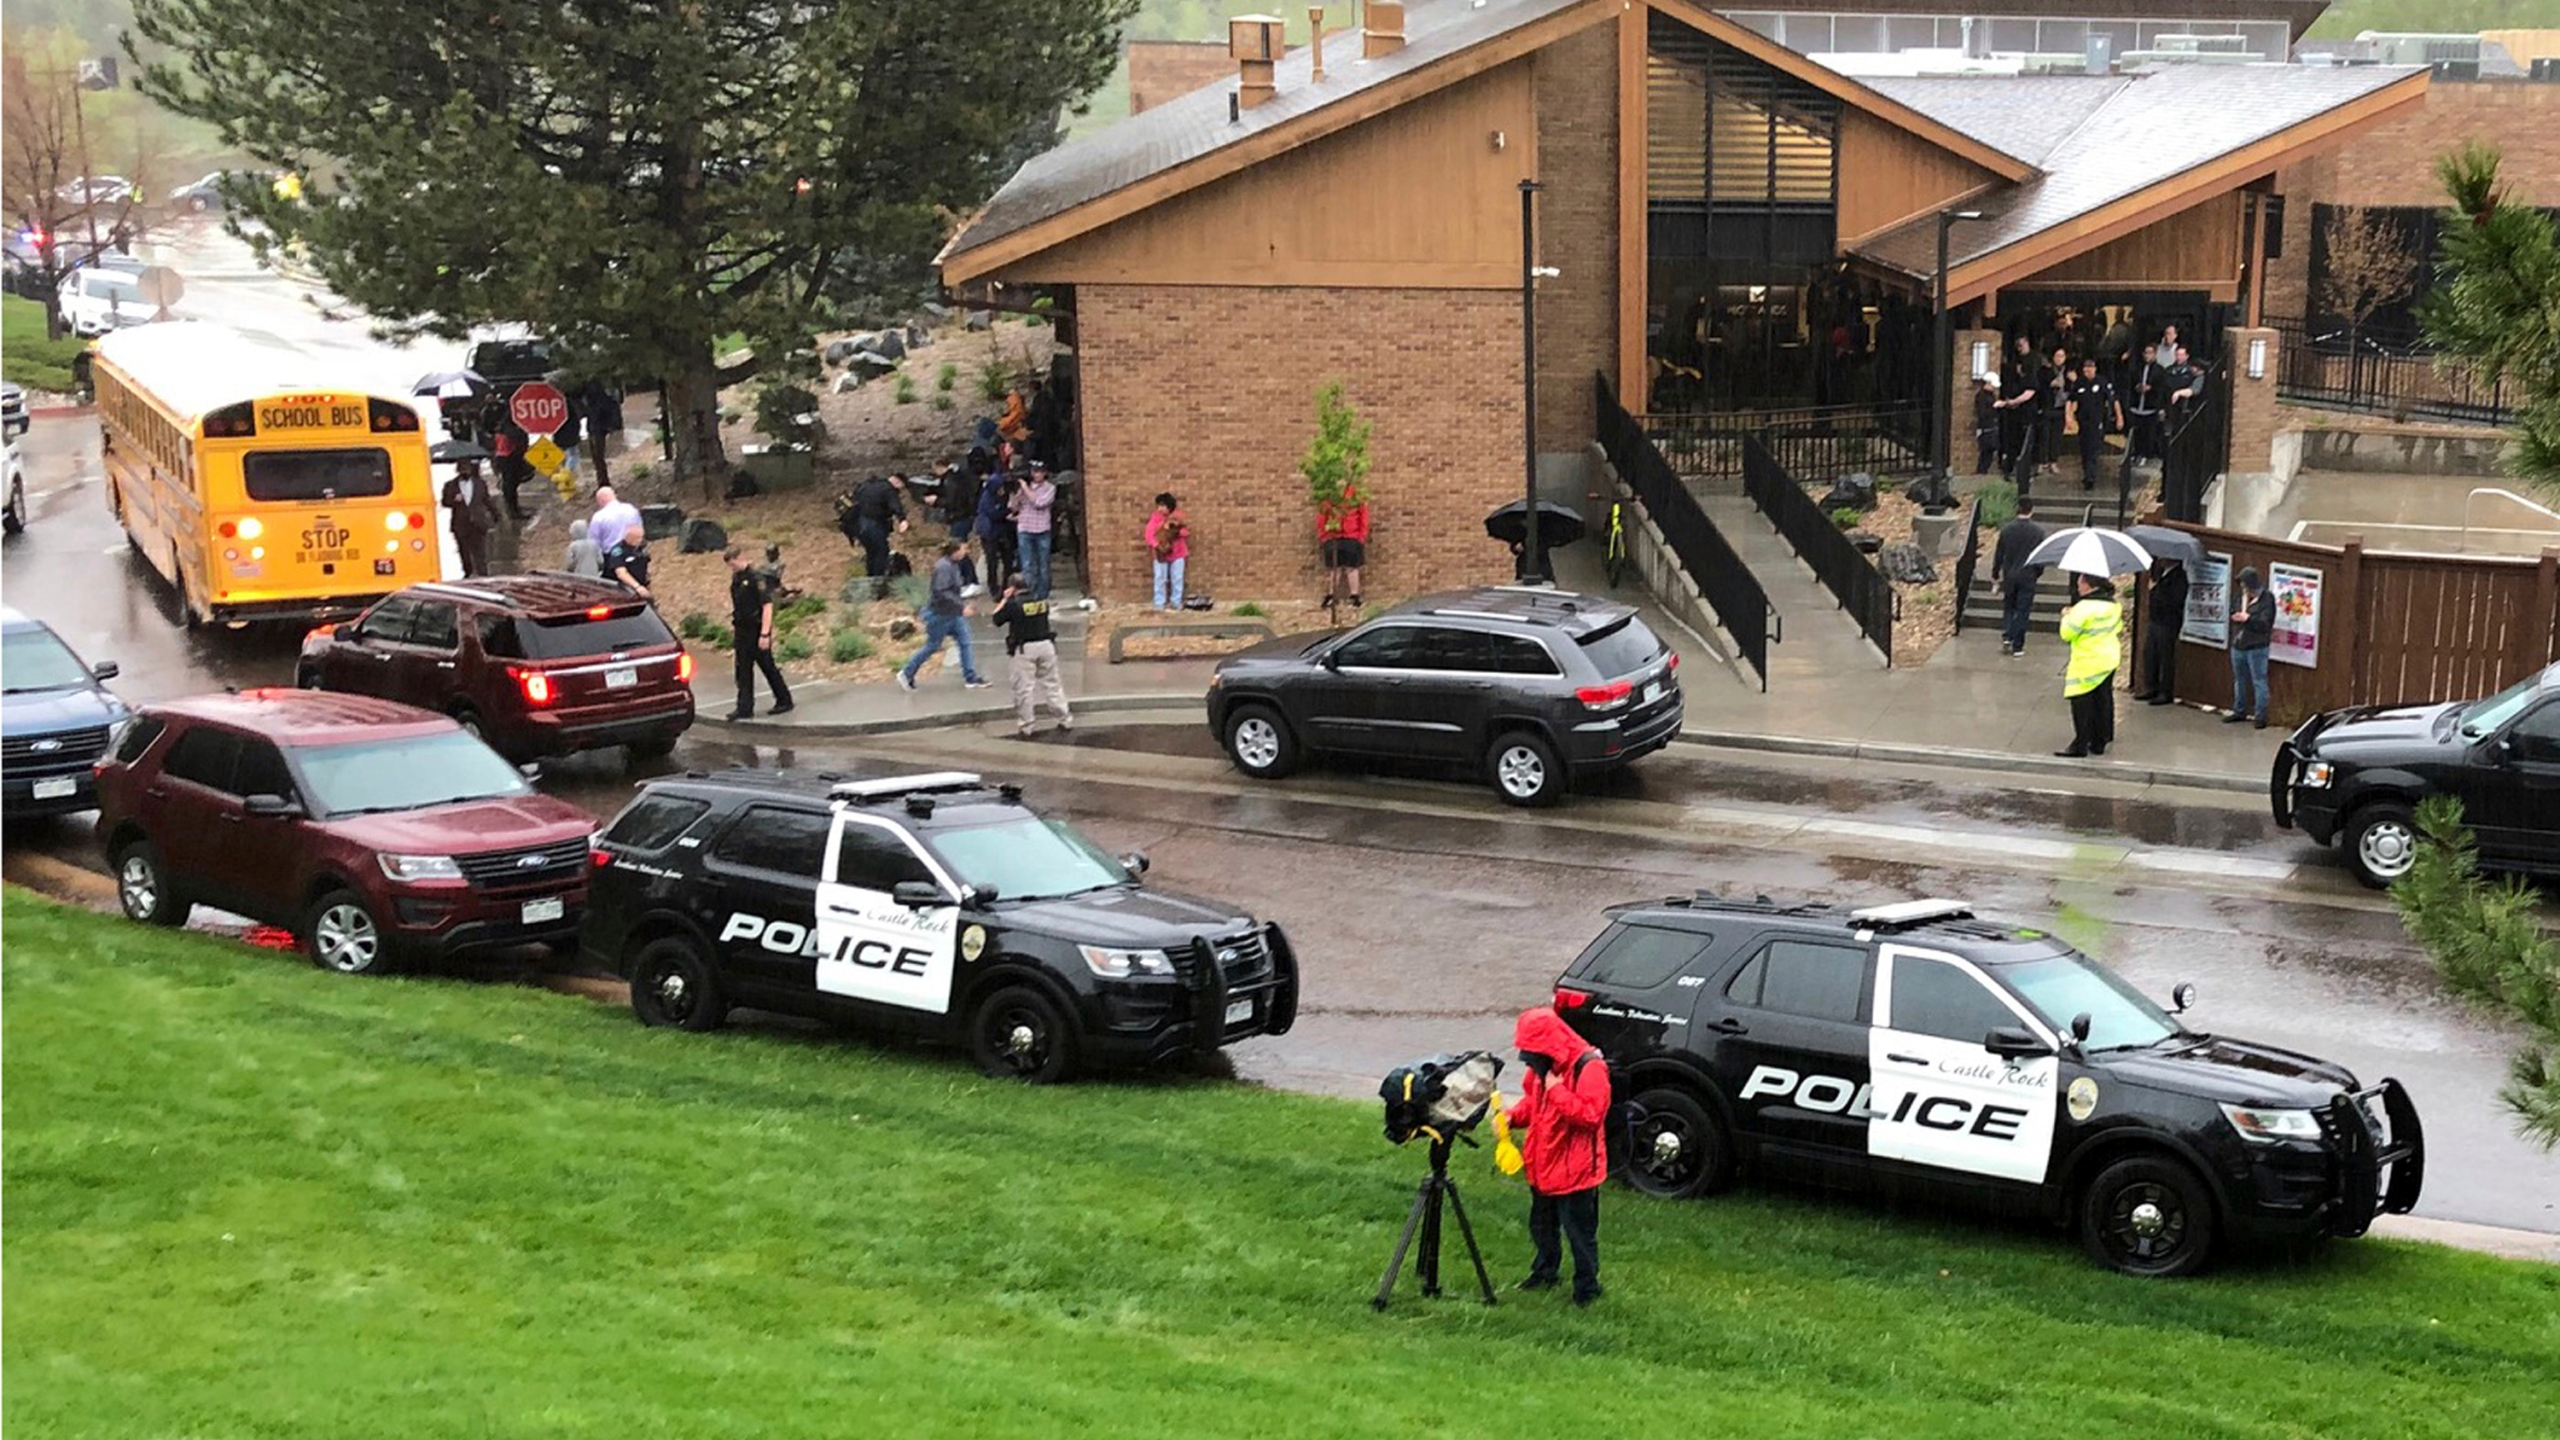 School_Shooting_Colorado_84253-159532.jpg62091262